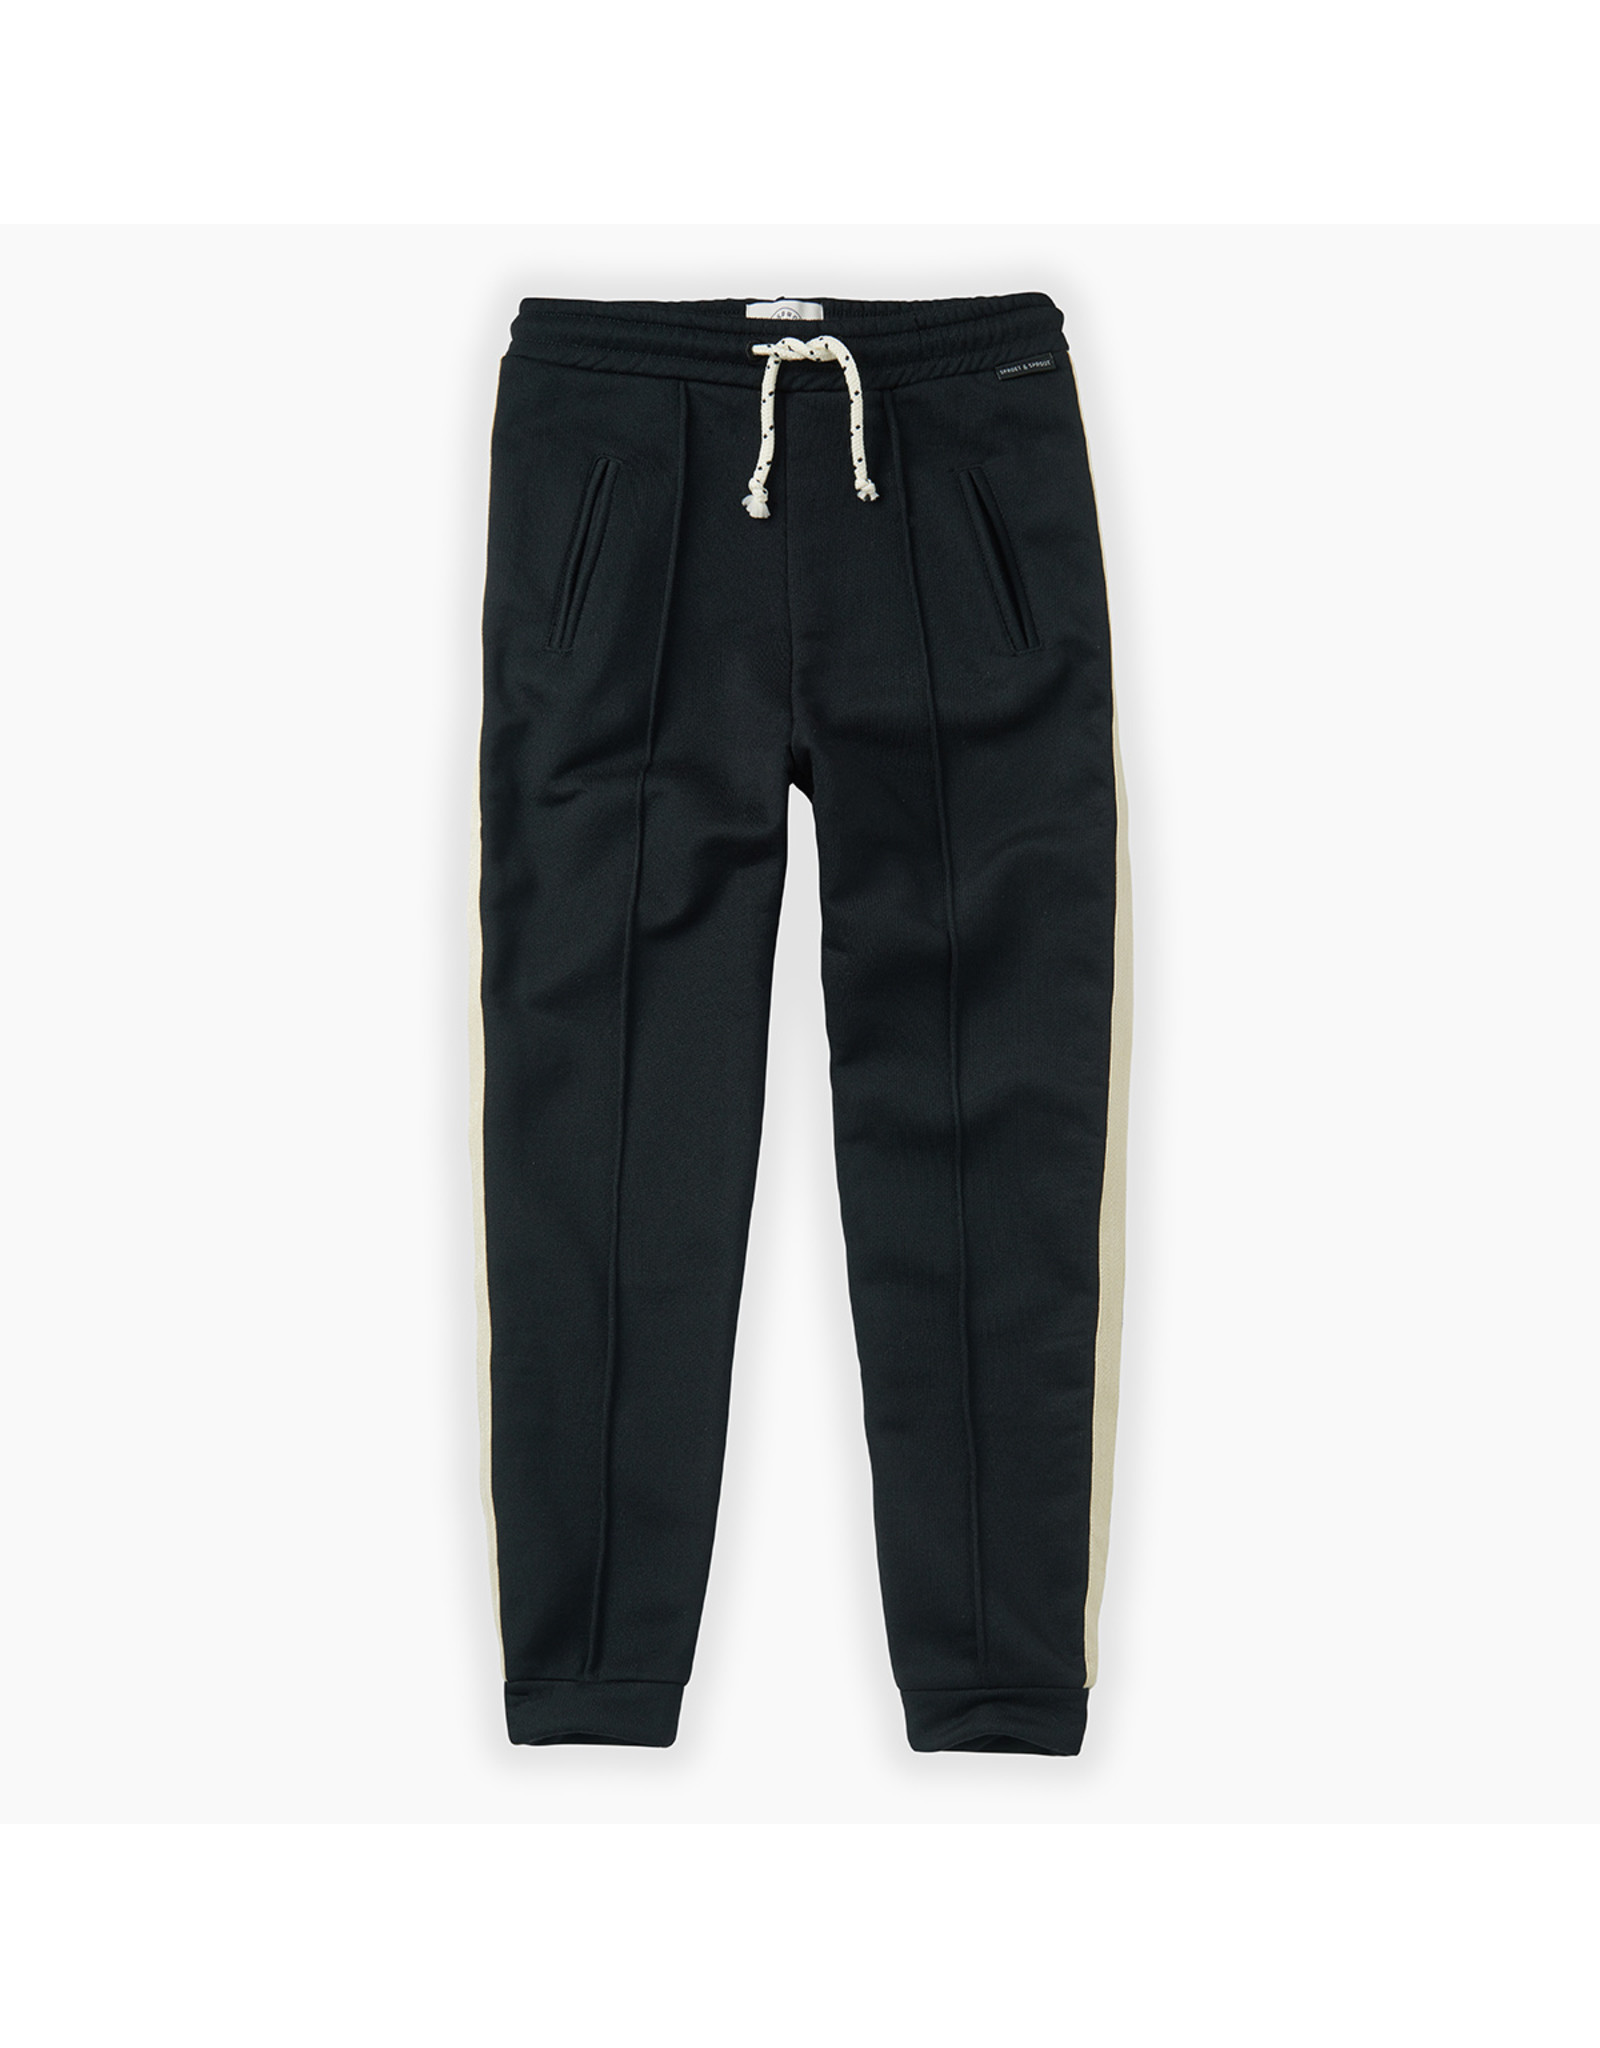 Sproet & Sprout Sproet & Sprout Track Pants Black